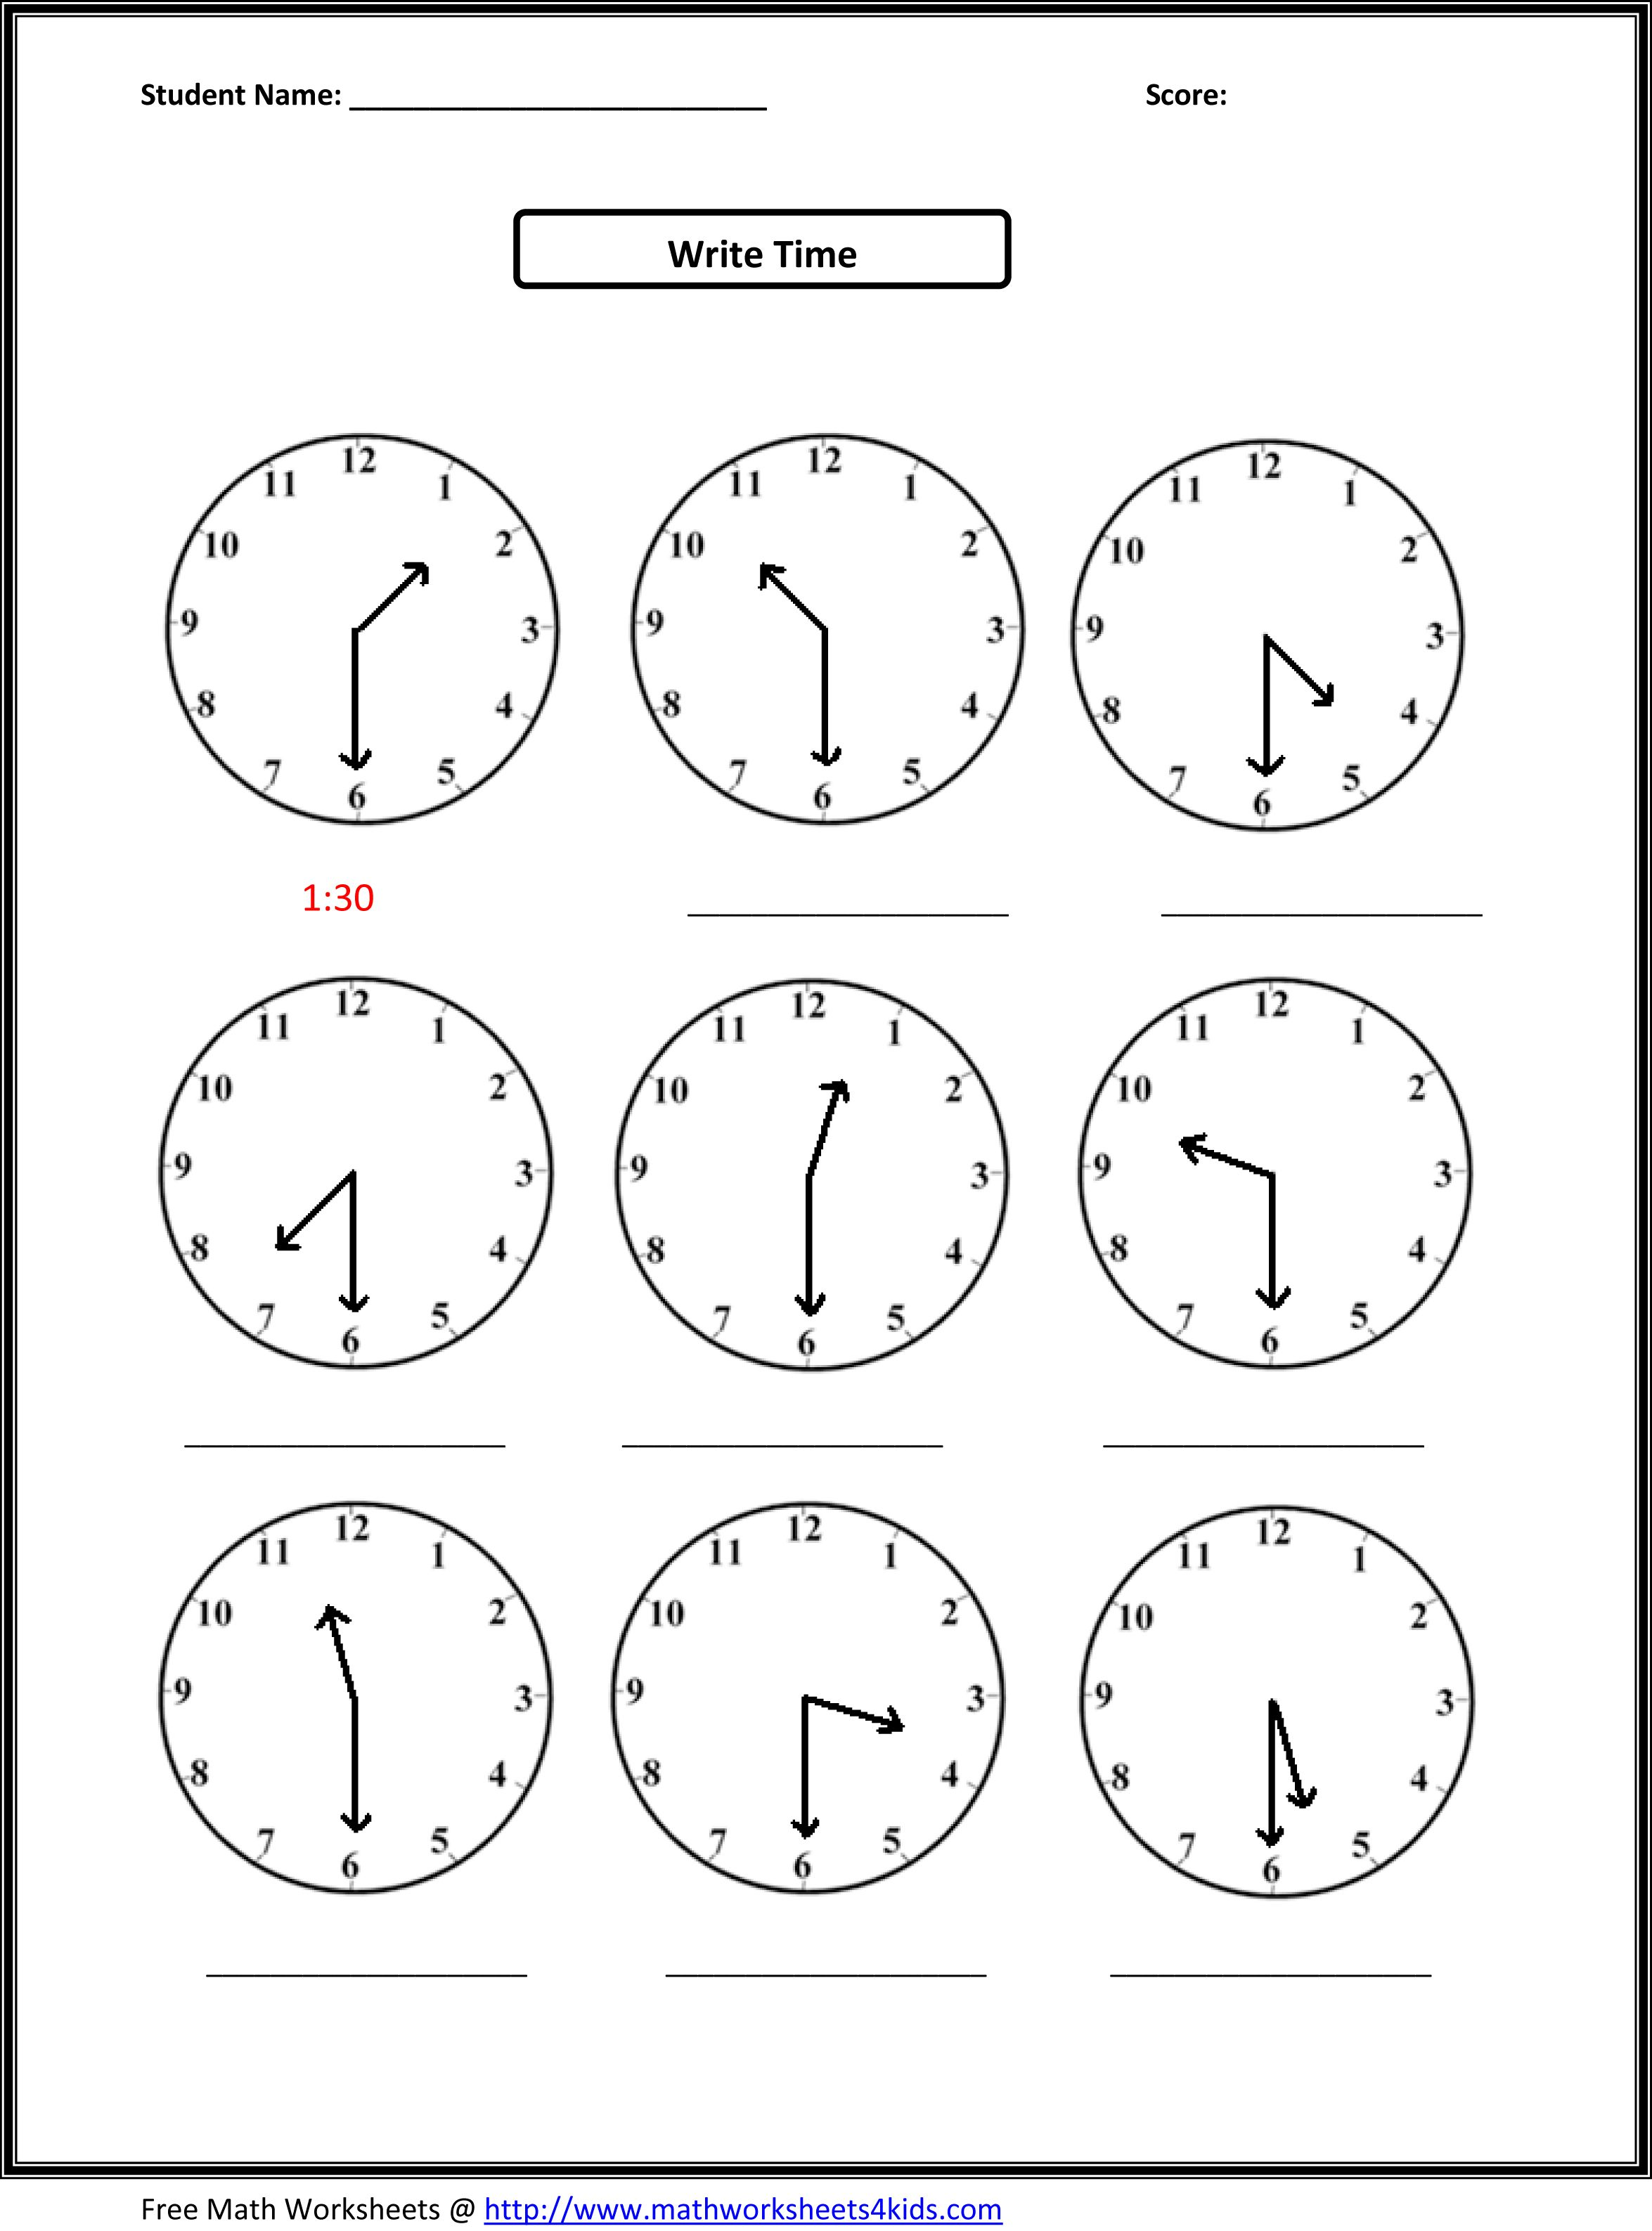 Proatmealus  Pleasing Worksheet On Time For Grade   Reocurent With Gorgeous Free Printable Telling Time Worksheets Nd Grade  Reocurent With Enchanting Cloze Sentences Worksheets Also Free Printable Abc Tracing Worksheets In Addition Superfudge Worksheets And Order Of Operations With Parentheses Worksheets As Well As Unit Rates And Ratios Worksheets Additionally Contraction Worksheets St Grade From Reocurentcom With Proatmealus  Gorgeous Worksheet On Time For Grade   Reocurent With Enchanting Free Printable Telling Time Worksheets Nd Grade  Reocurent And Pleasing Cloze Sentences Worksheets Also Free Printable Abc Tracing Worksheets In Addition Superfudge Worksheets From Reocurentcom